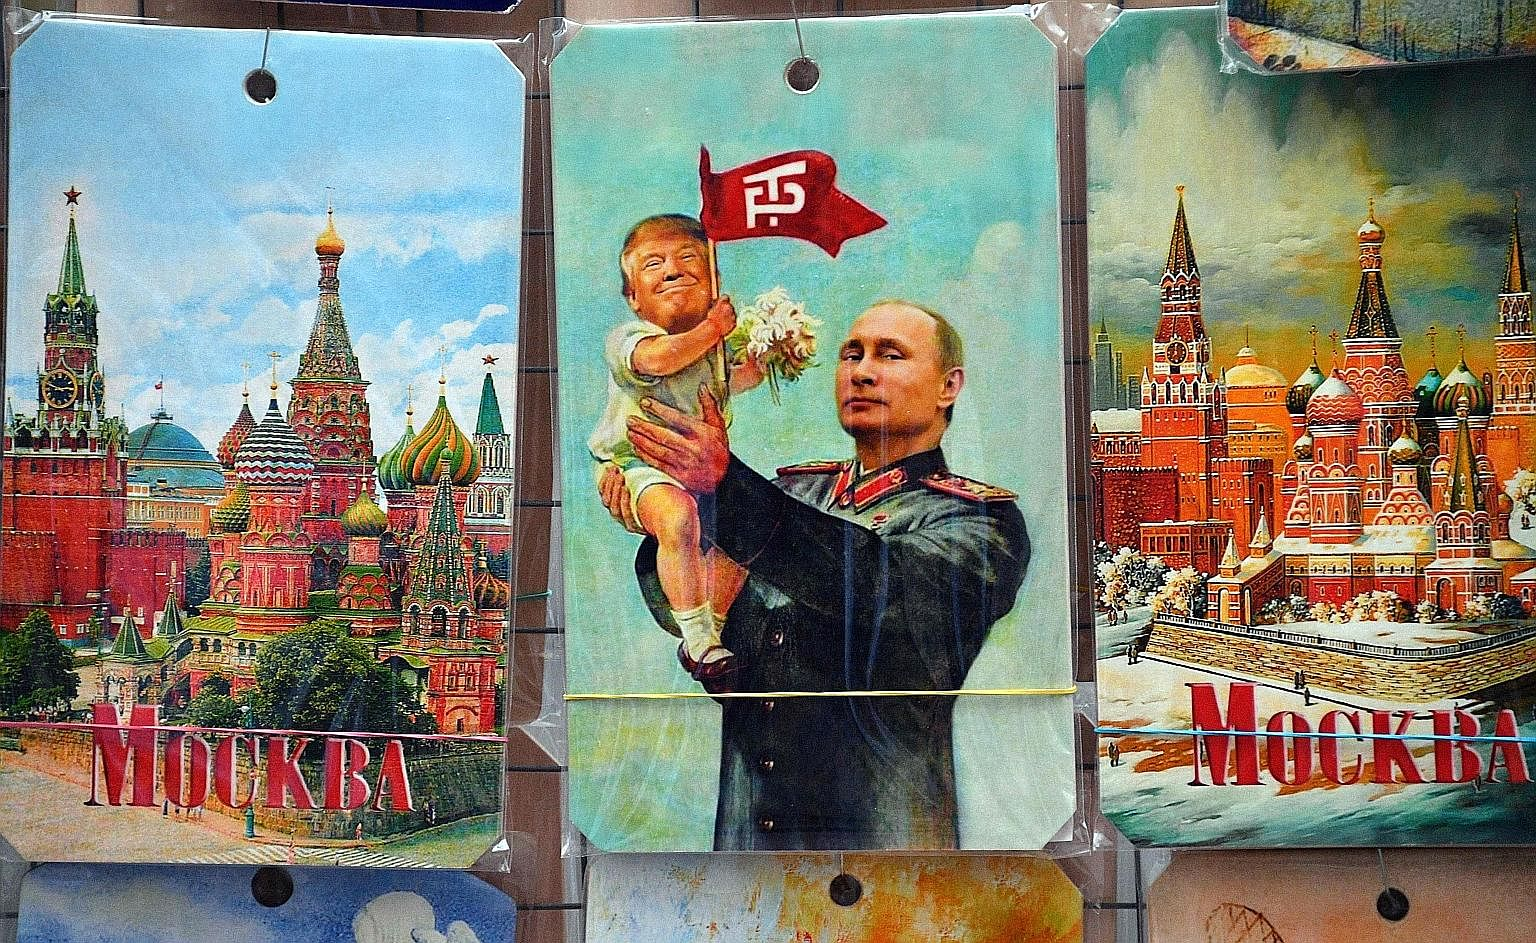 A drawing on sale in a souvenir shop in Moscow depicting Russian President Vladimir Putin holding a baby with the face of US President Donald Trump, based on an old propaganda poster showing former Soviet leader Joseph Stalin holding a baby. The firs